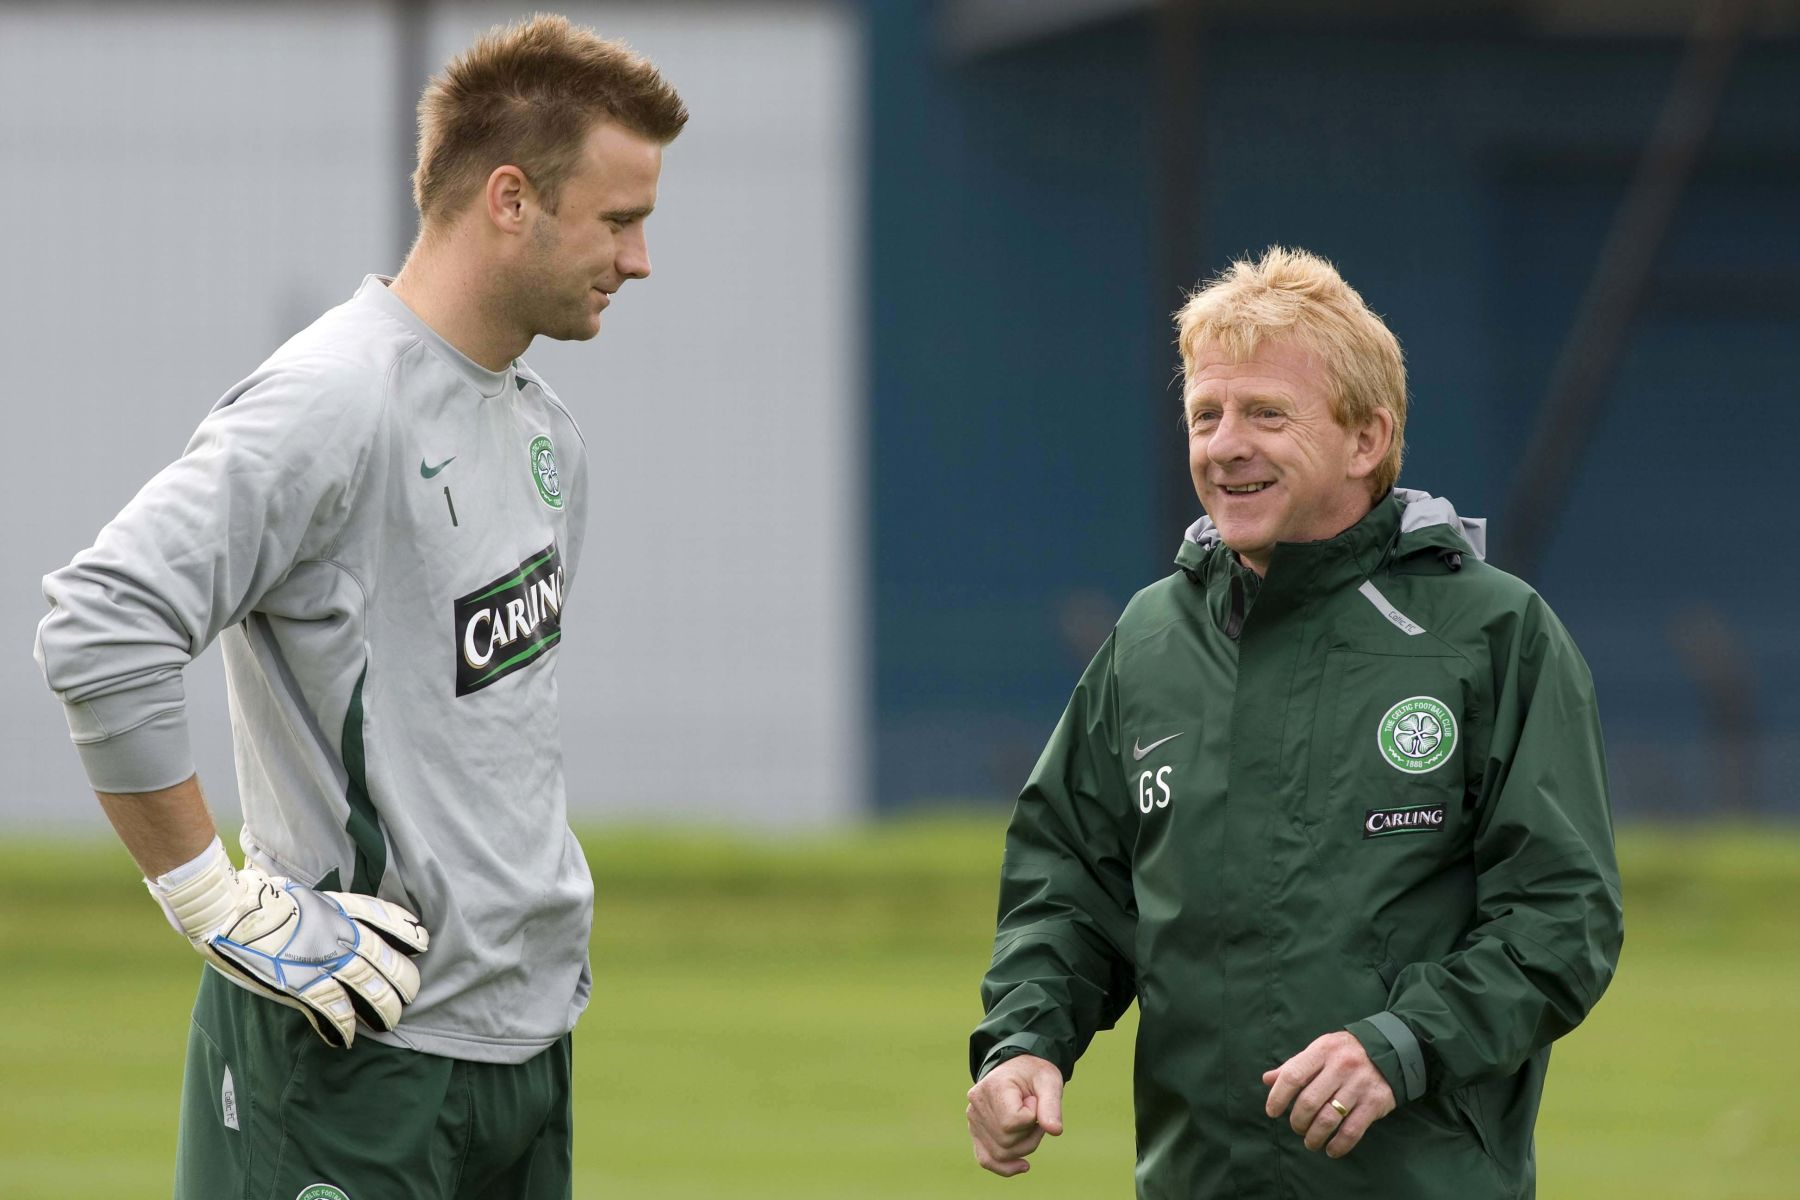 31/08/07 CELTIC TRAINING BARROWFIELD - GLASGOW Celtic manager Gordon Strachan (right) is pleased with the efforts of goalkeeper Artur Boruc in securing Champions League qualification / Newspix.pl